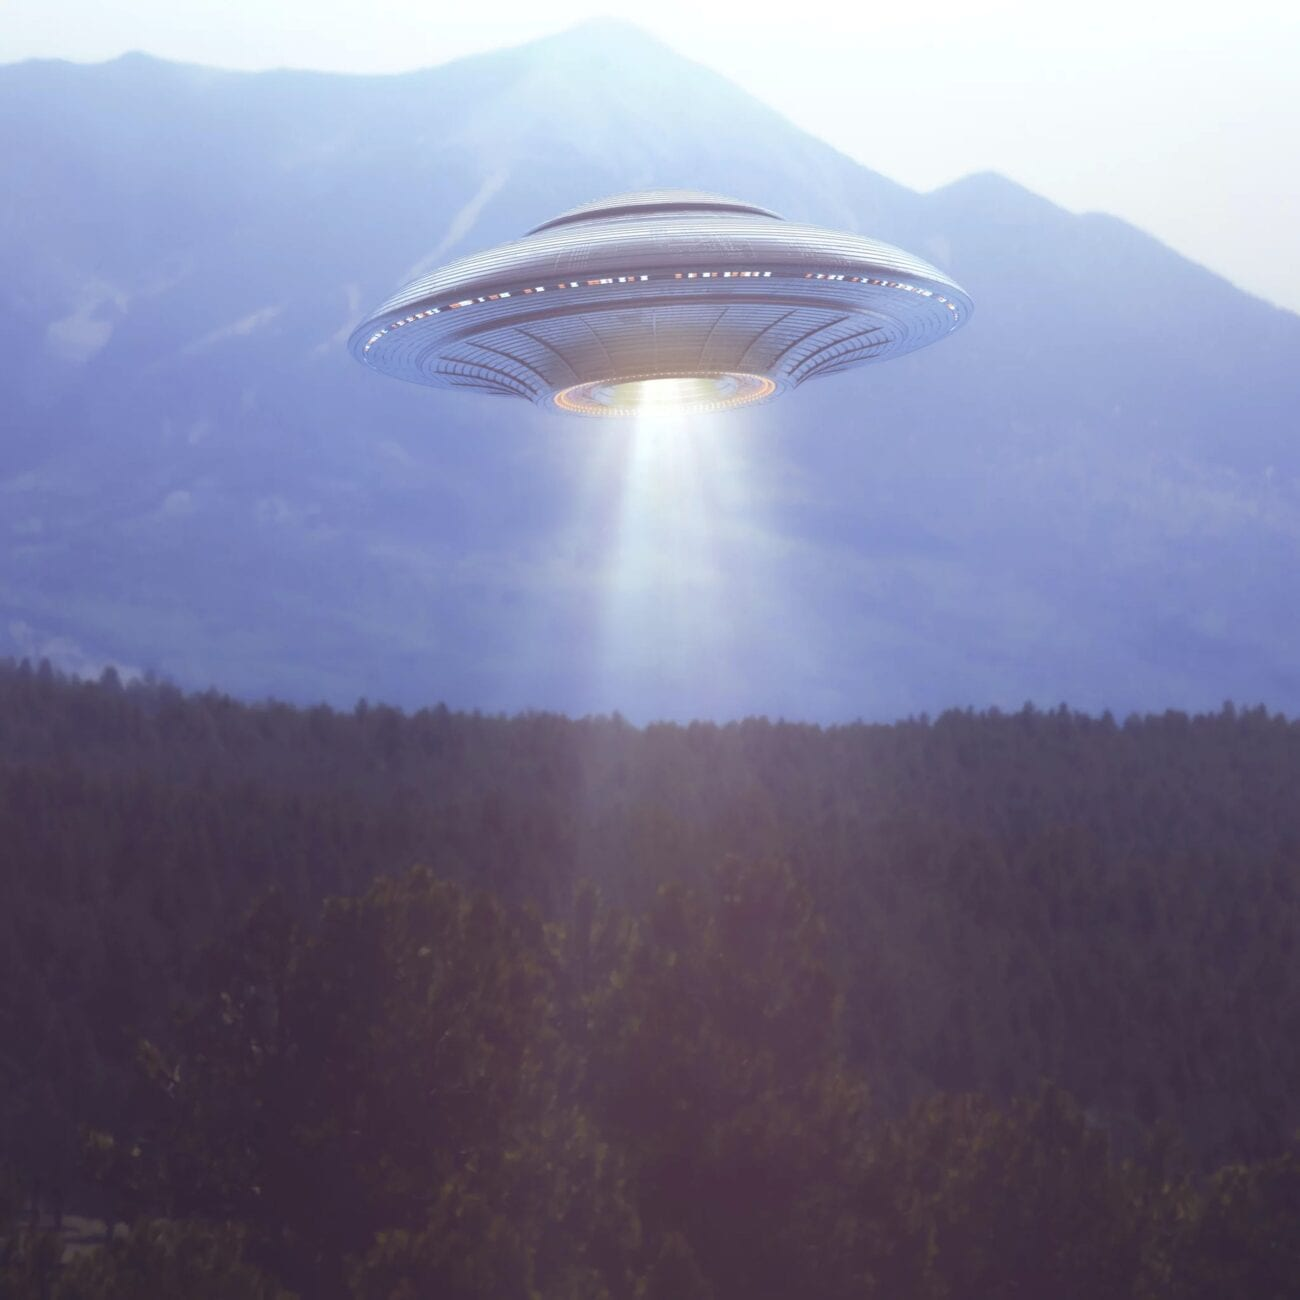 You might be surprised by just how many celebrities claim to have had real UFO sightings. Here are some of our favorite stories.